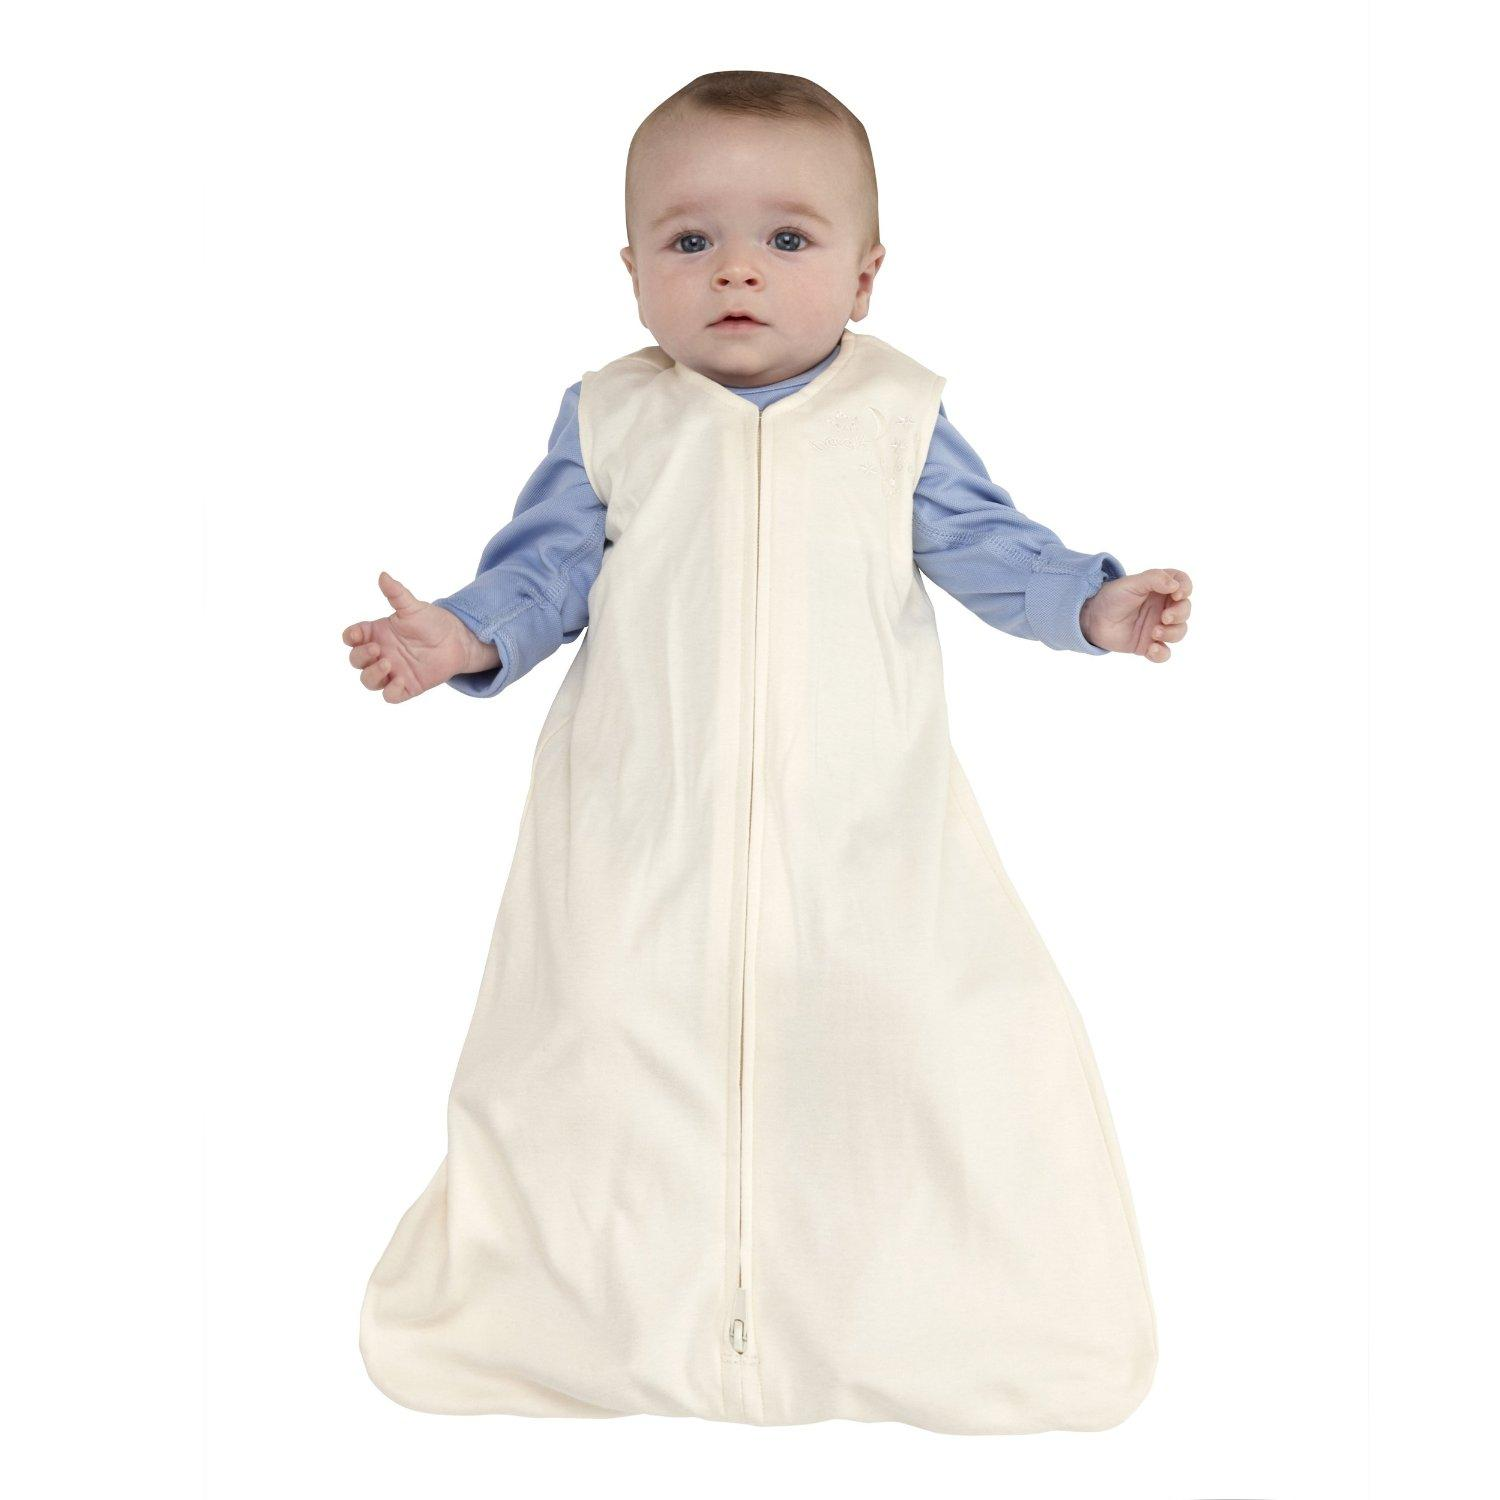 HALO SleepSack Micro-Fleece Wearable Blanket, Cream, Medium